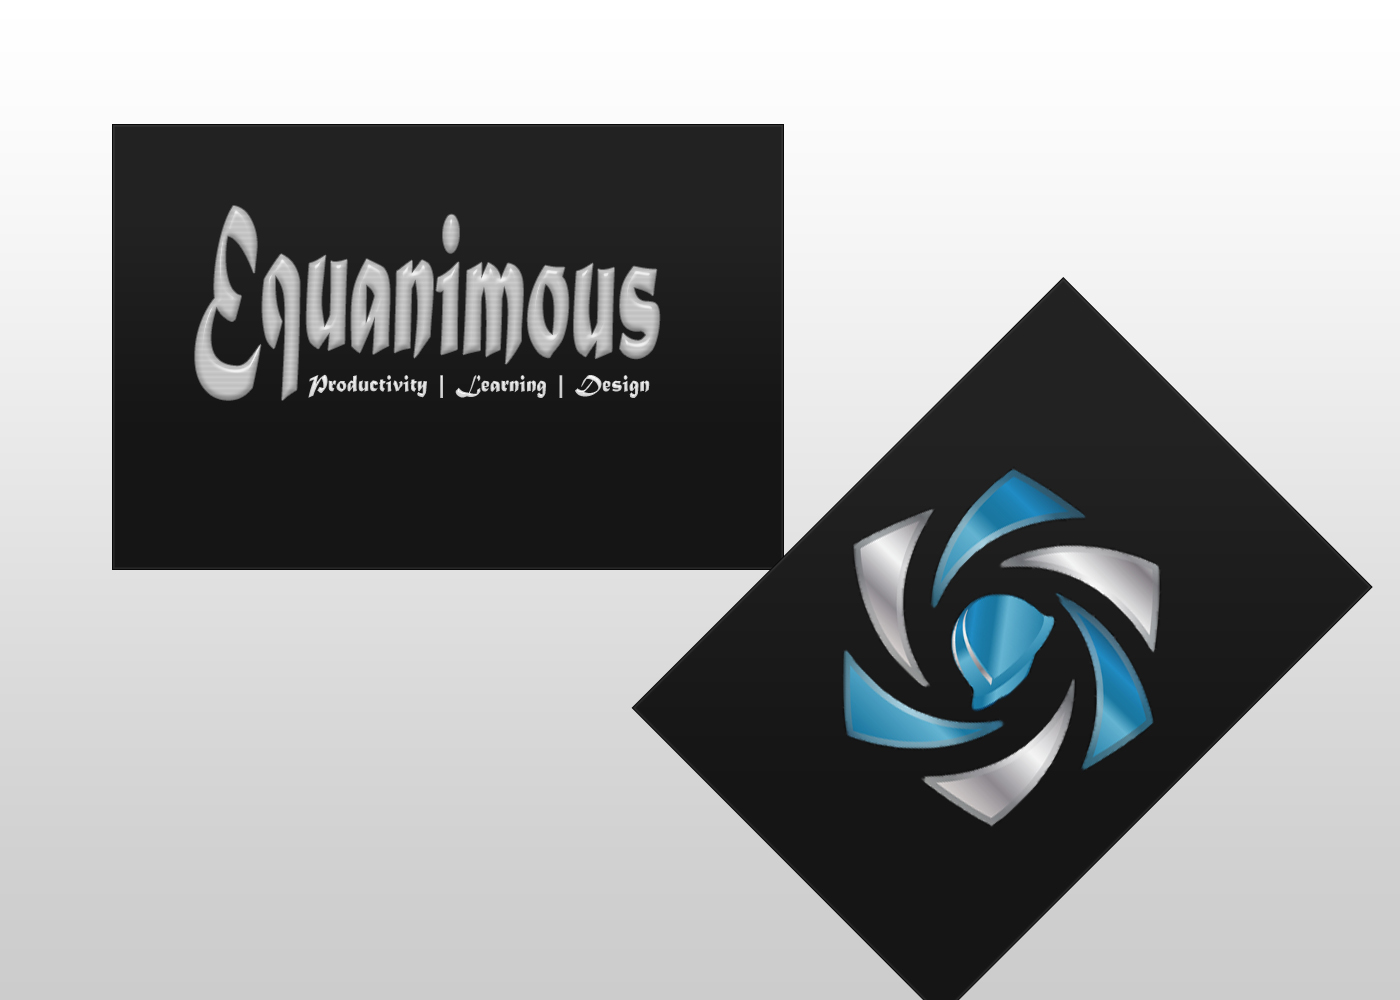 Logo Design by DOUMA AMINE - Entry No. 523 in the Logo Design Contest Logo Design : EQUANIMOUS : Productivity | Learning | Design.